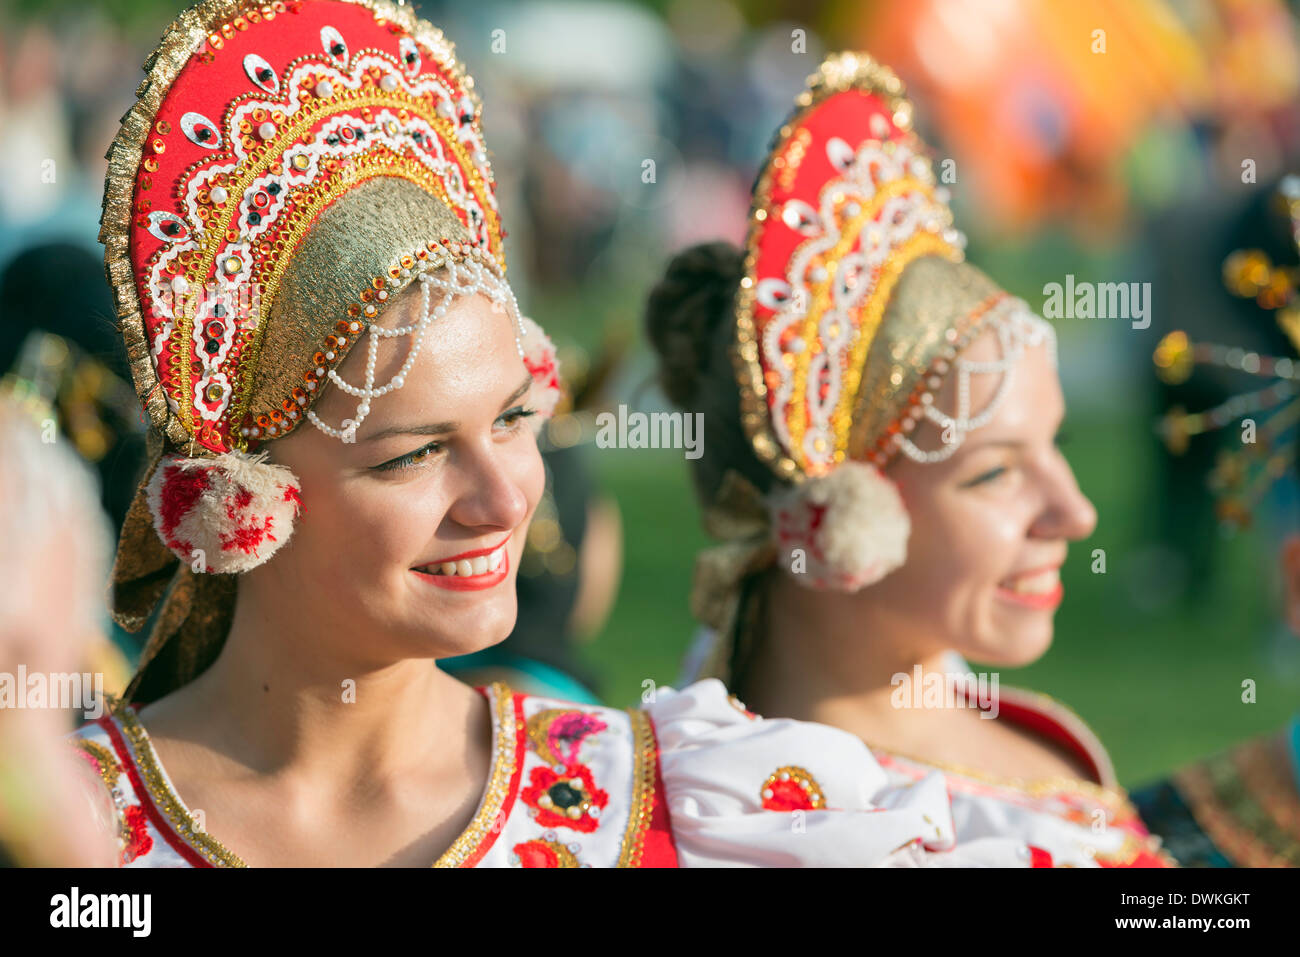 Performers from Romania in costume, International Festival of Mountain Folklore, Zakopane, Carpathian Mountains, Poland - Stock Image